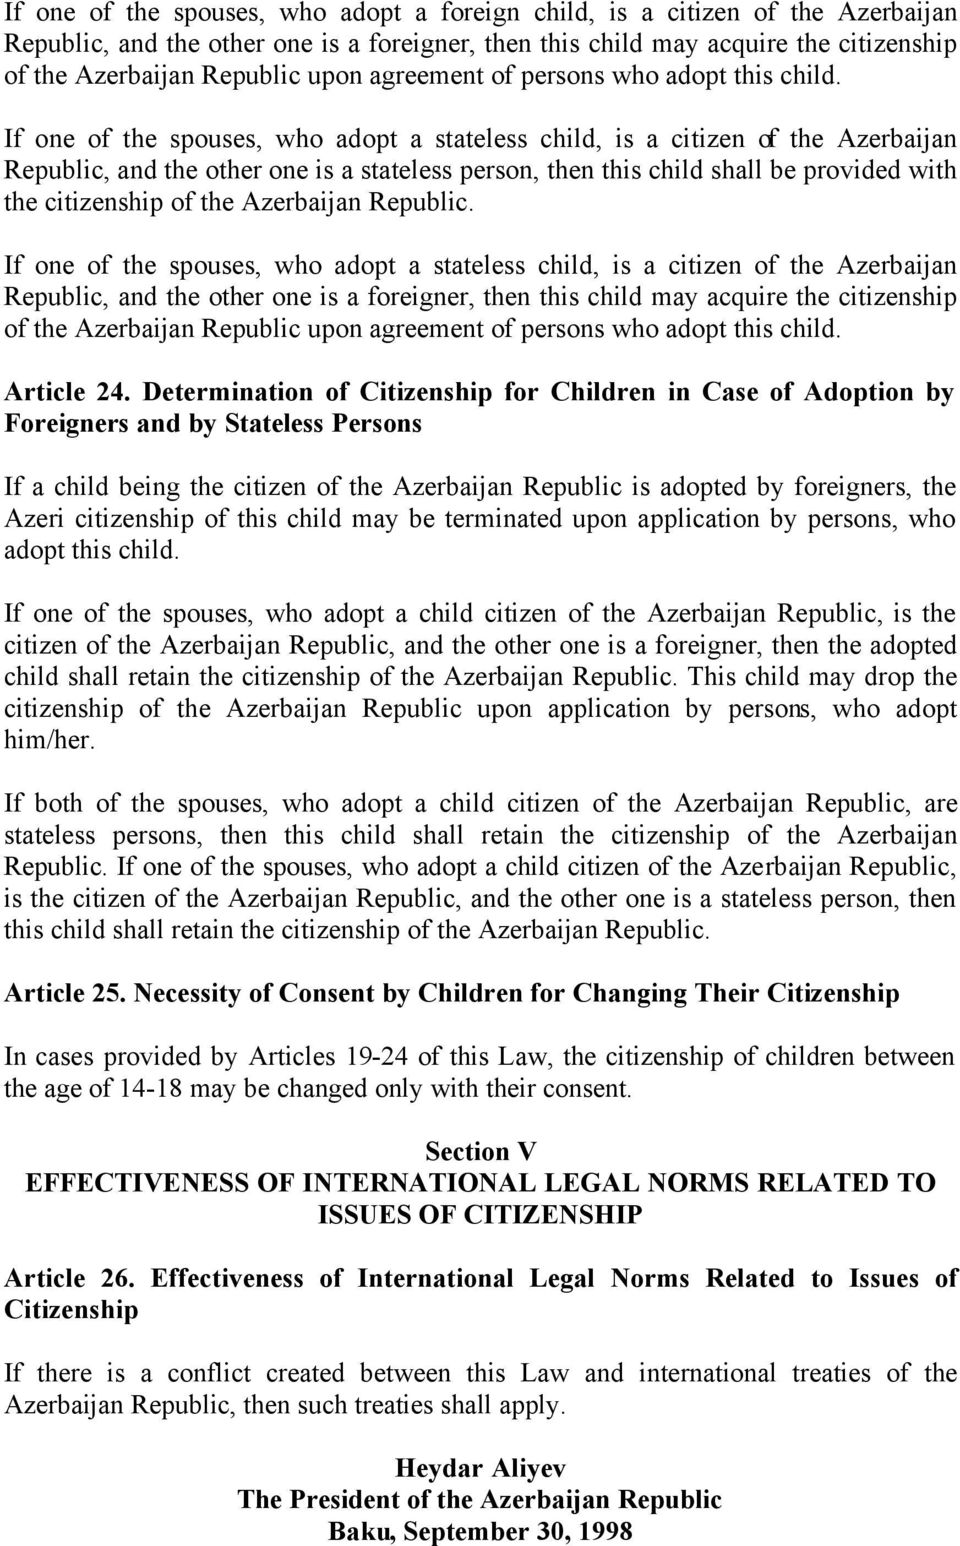 If one of the spouses, who adopt a stateless child, is a citizen of the Azerbaijan Republic, and the other one is a stateless person, then this child shall be provided with the citizenship of the